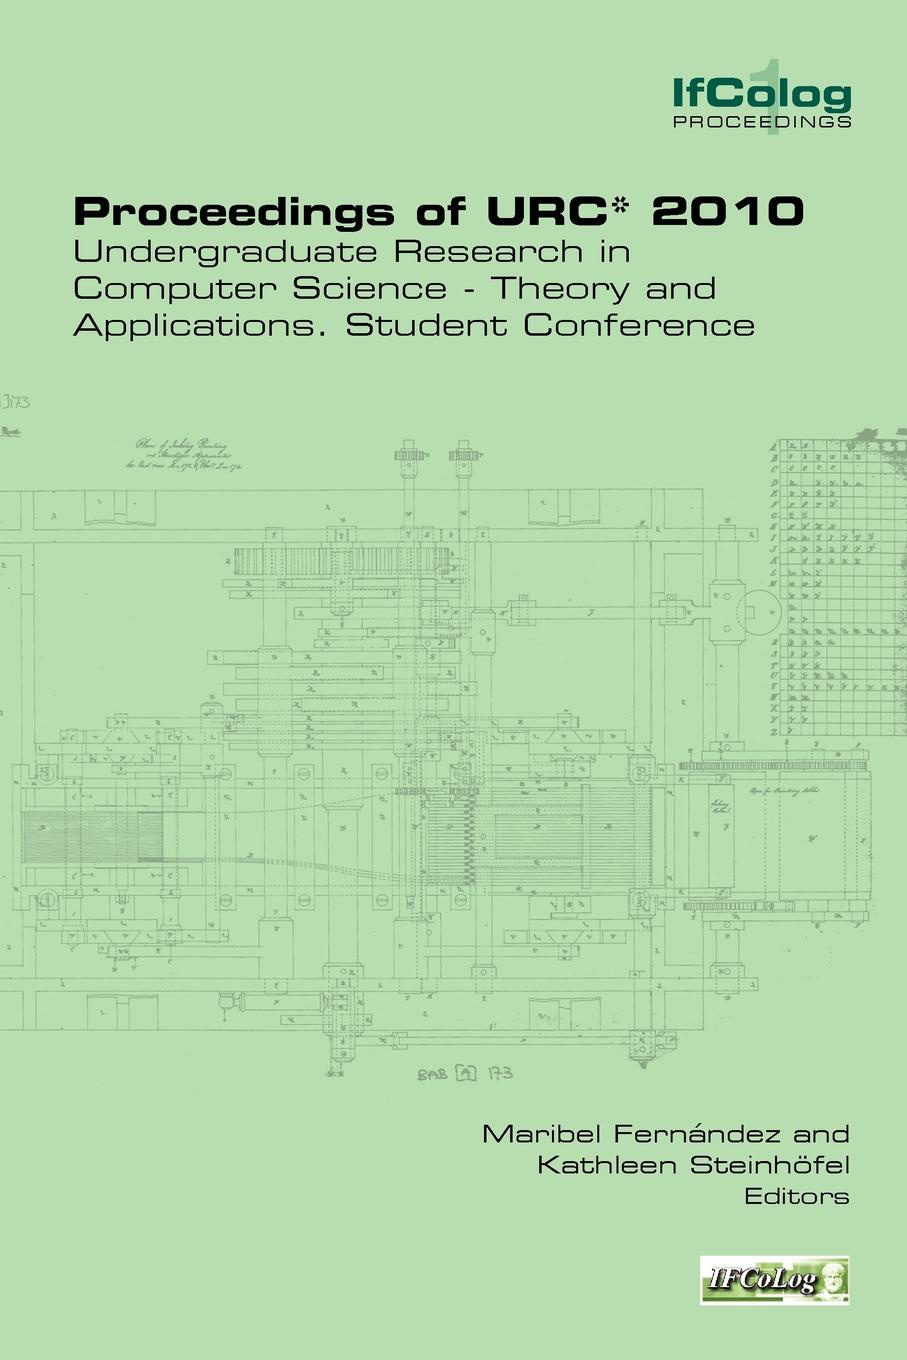 Proceedings of Urc. 2010. Undergraduate Research in Computer Science - Theory and Applications. Student Conference carprie new replacement atx motherboard switch on off reset power cable for pc computer 17aug23 dropshipping